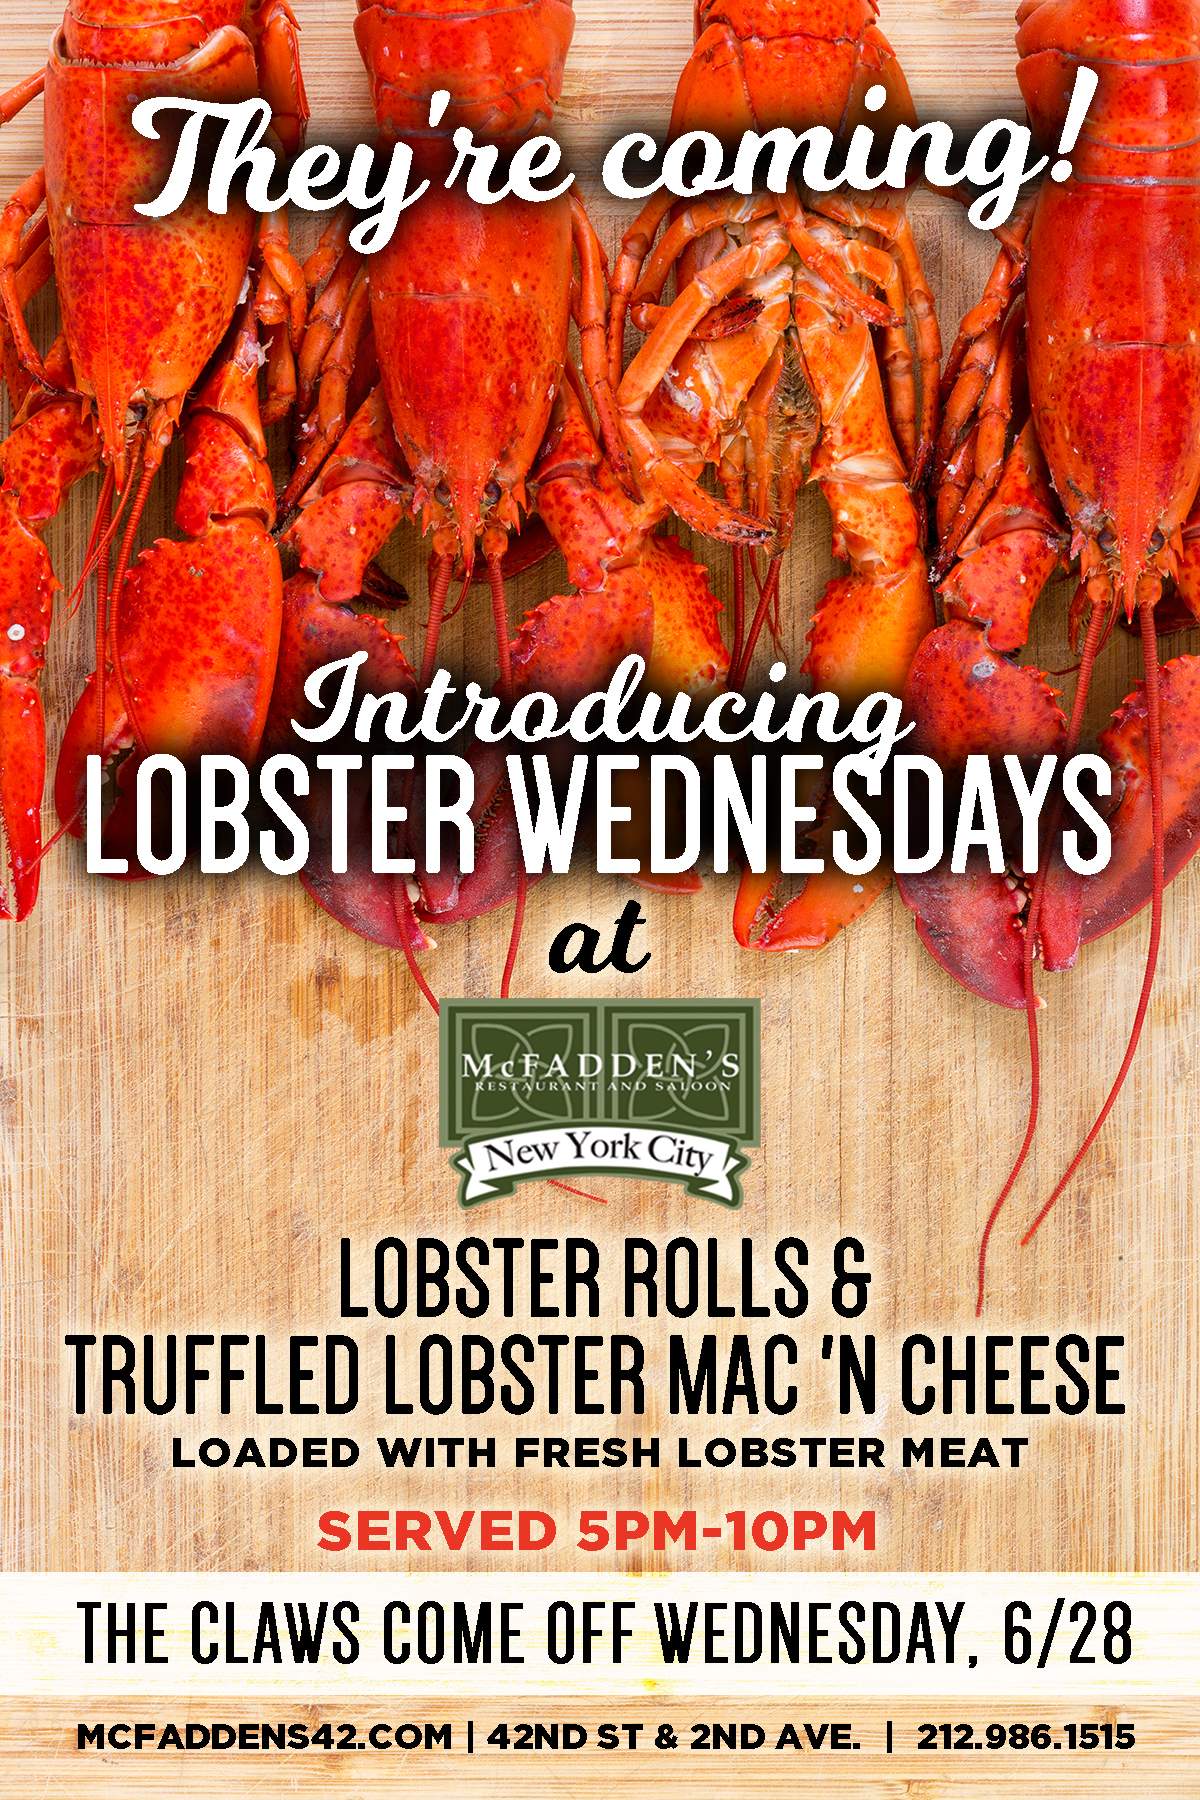 Launch of Lobster Wednesdays at McFadden's - MurphGuide: NYC Bar Guide